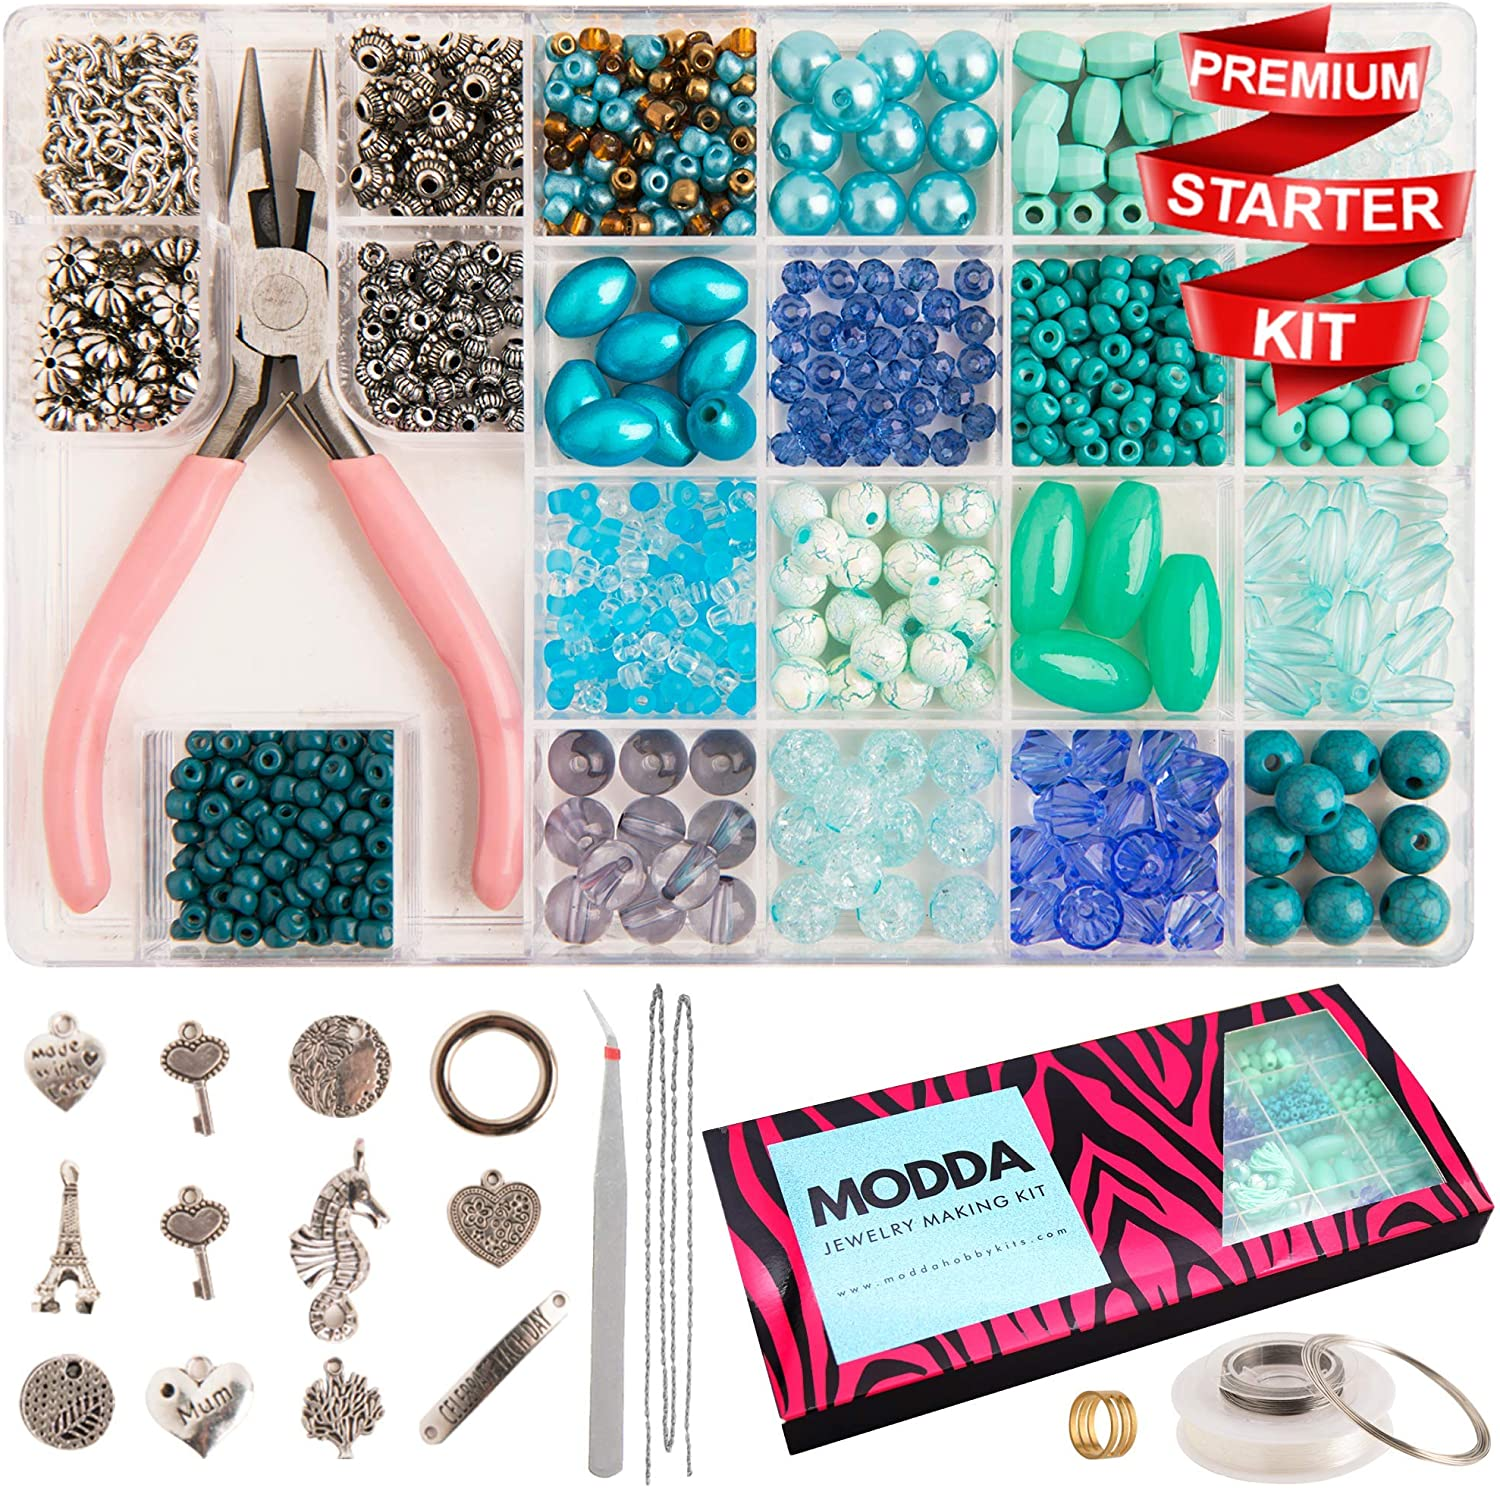 Modda Jewelry Making Kit - Unique Gift Ideas For 17 Year Old Female Teenage Girl